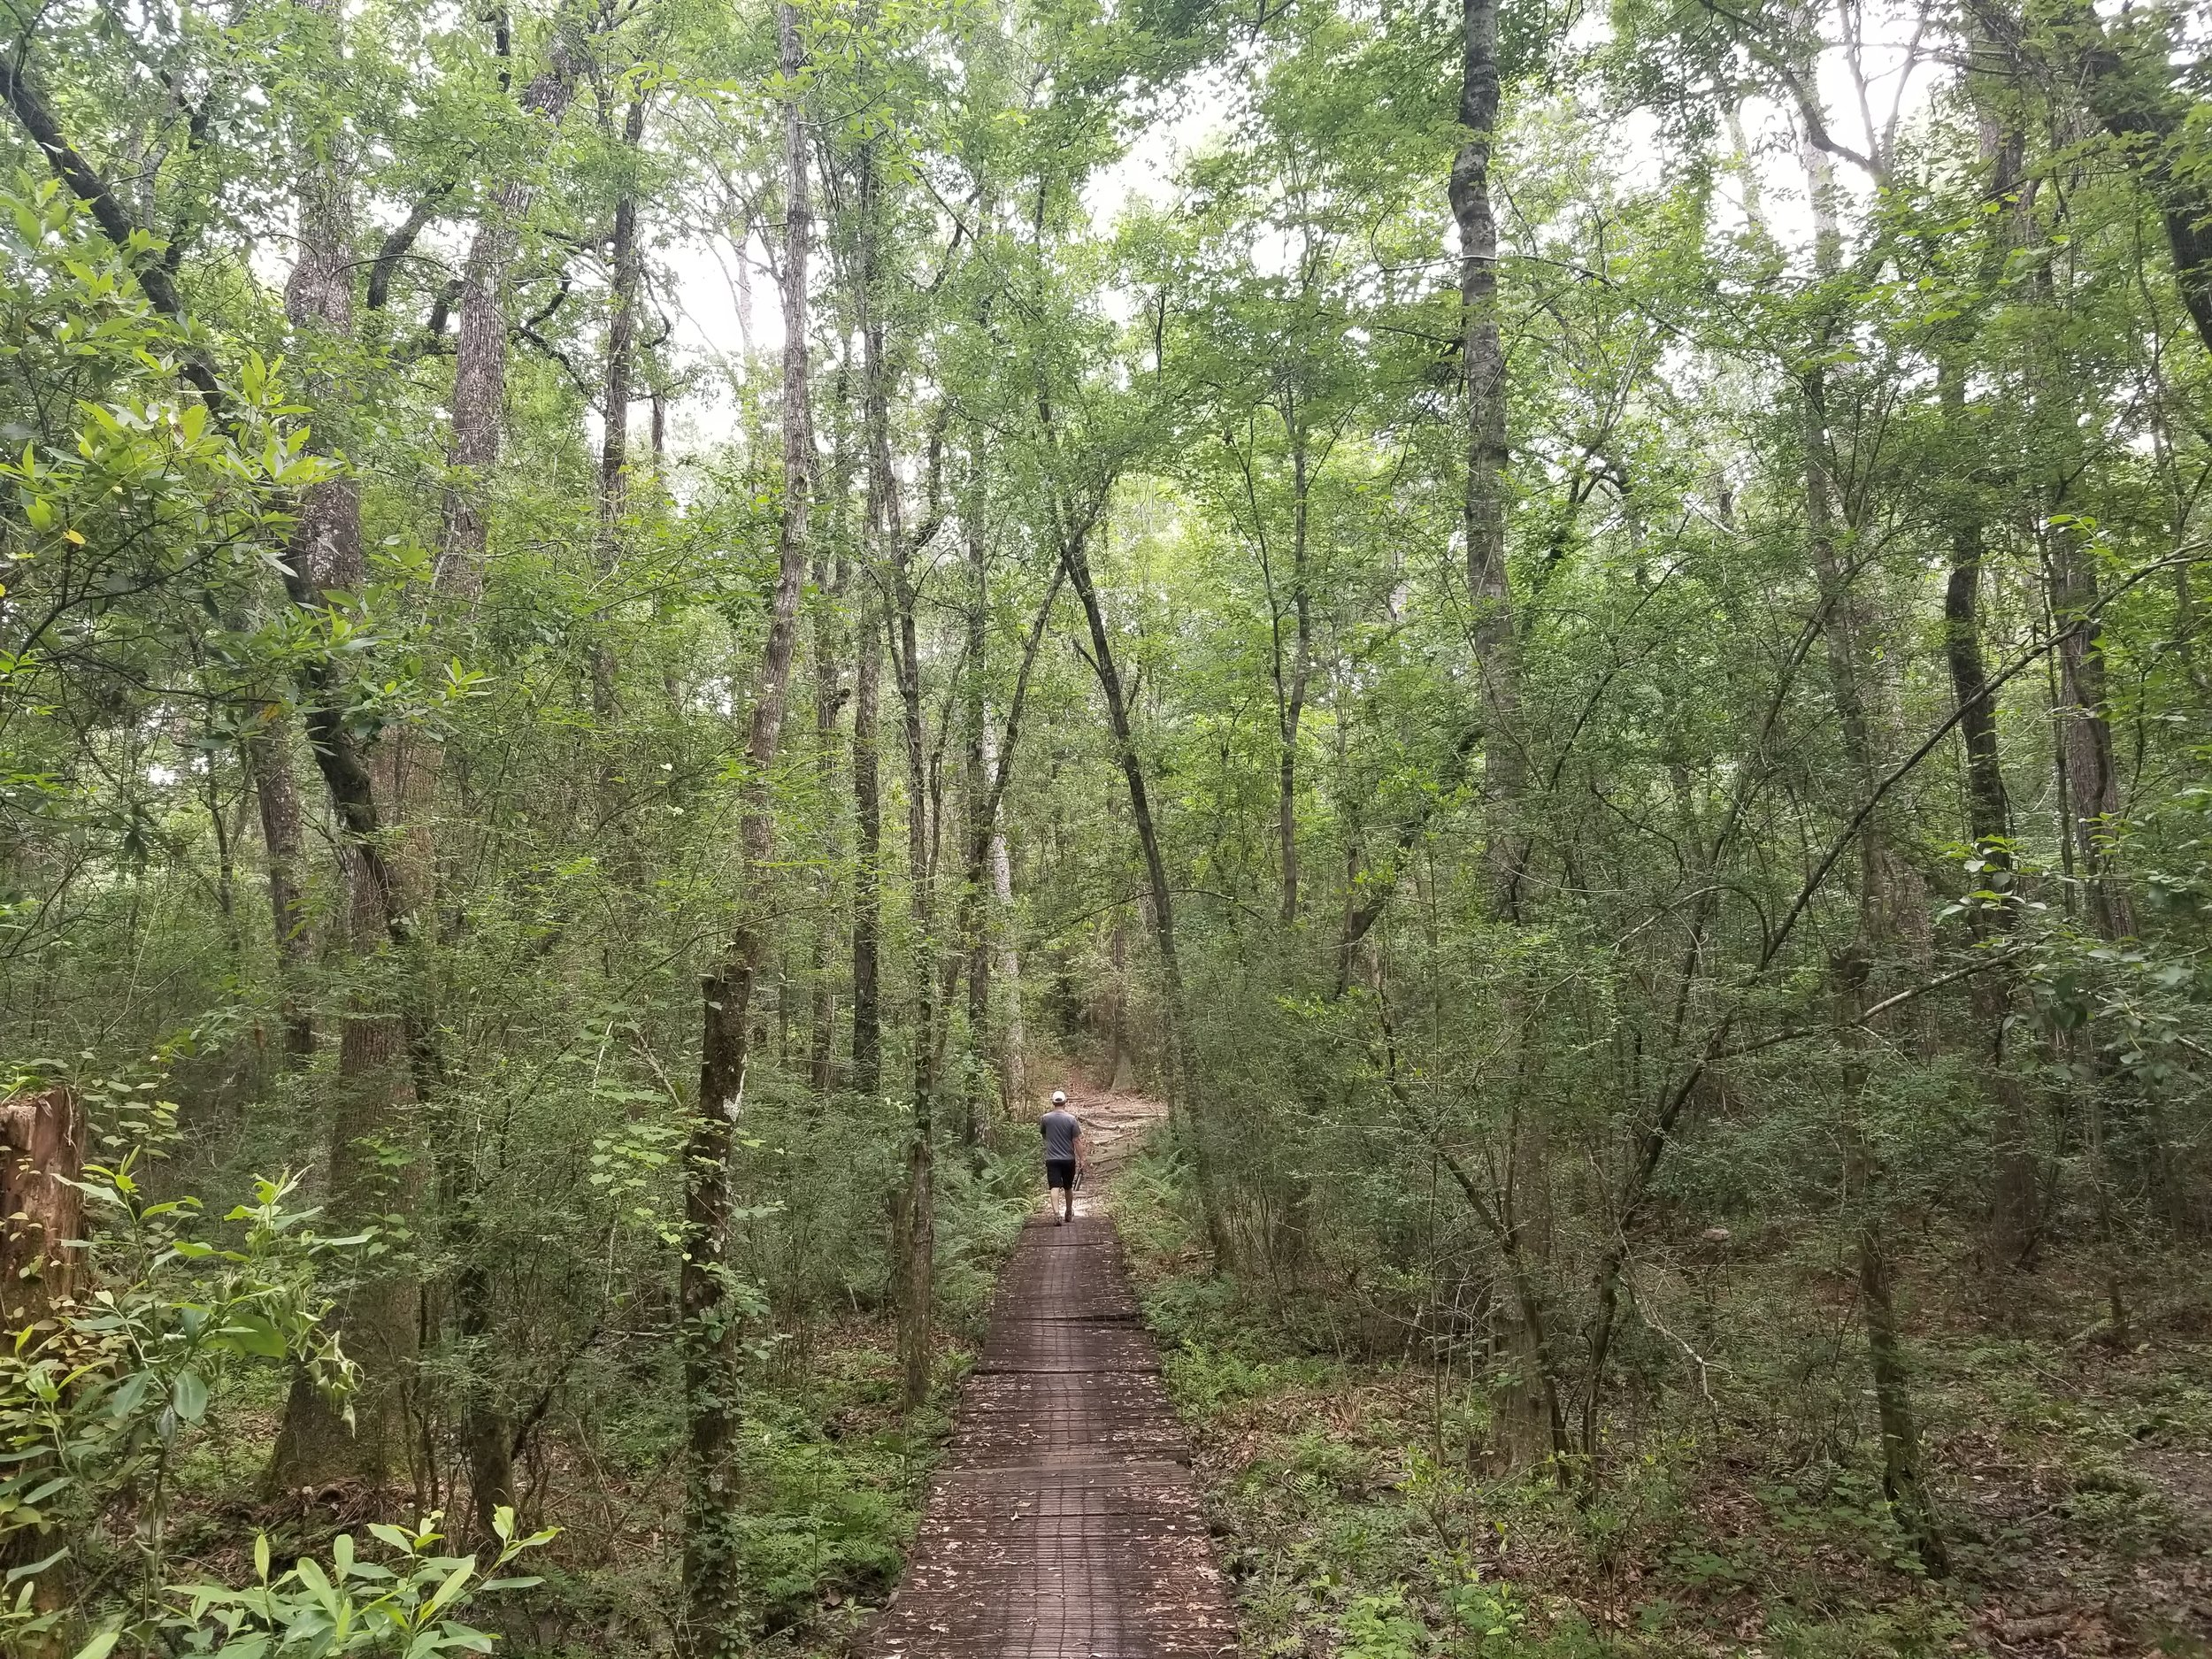 The campground had multiple hiking trails and most of the trail was covered with trees which made hiking during the day bearable